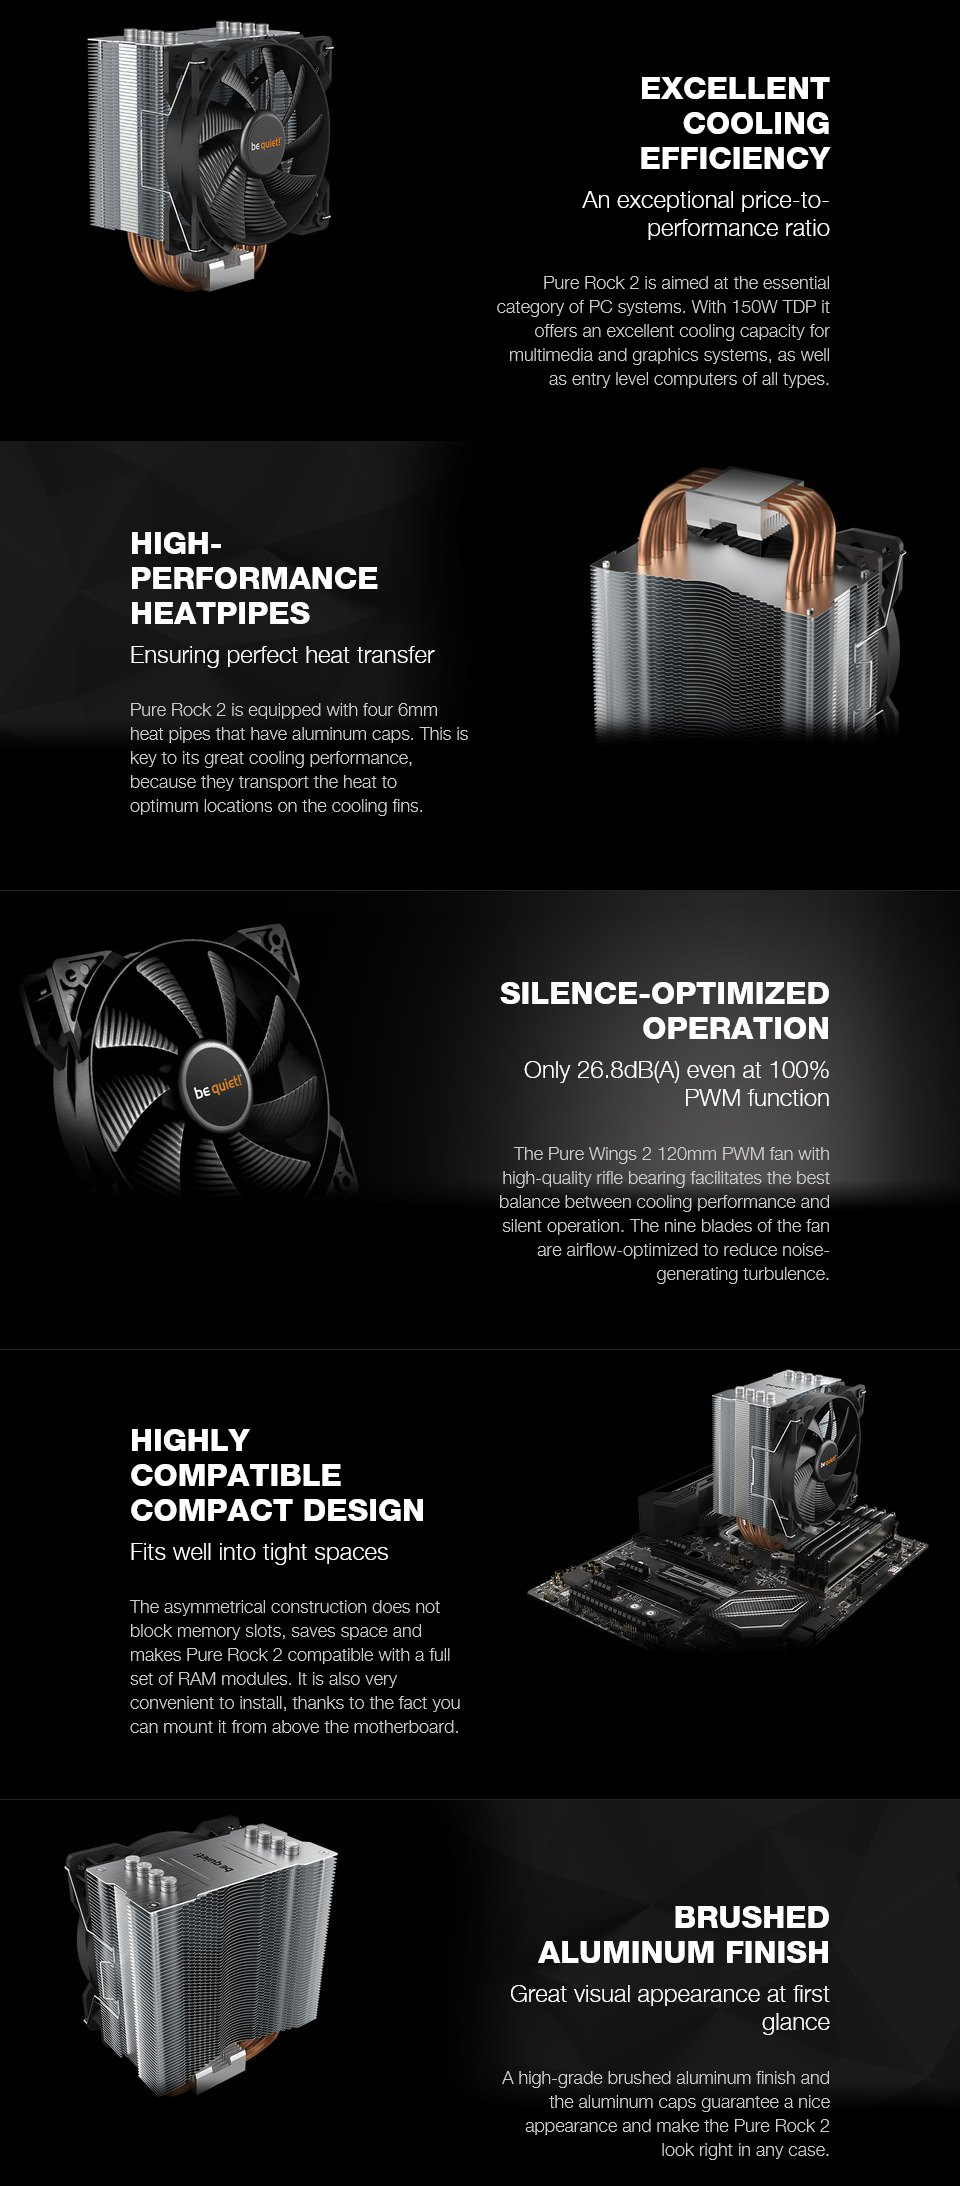 be quiet! Pure Rock 2 CPU Cooler features